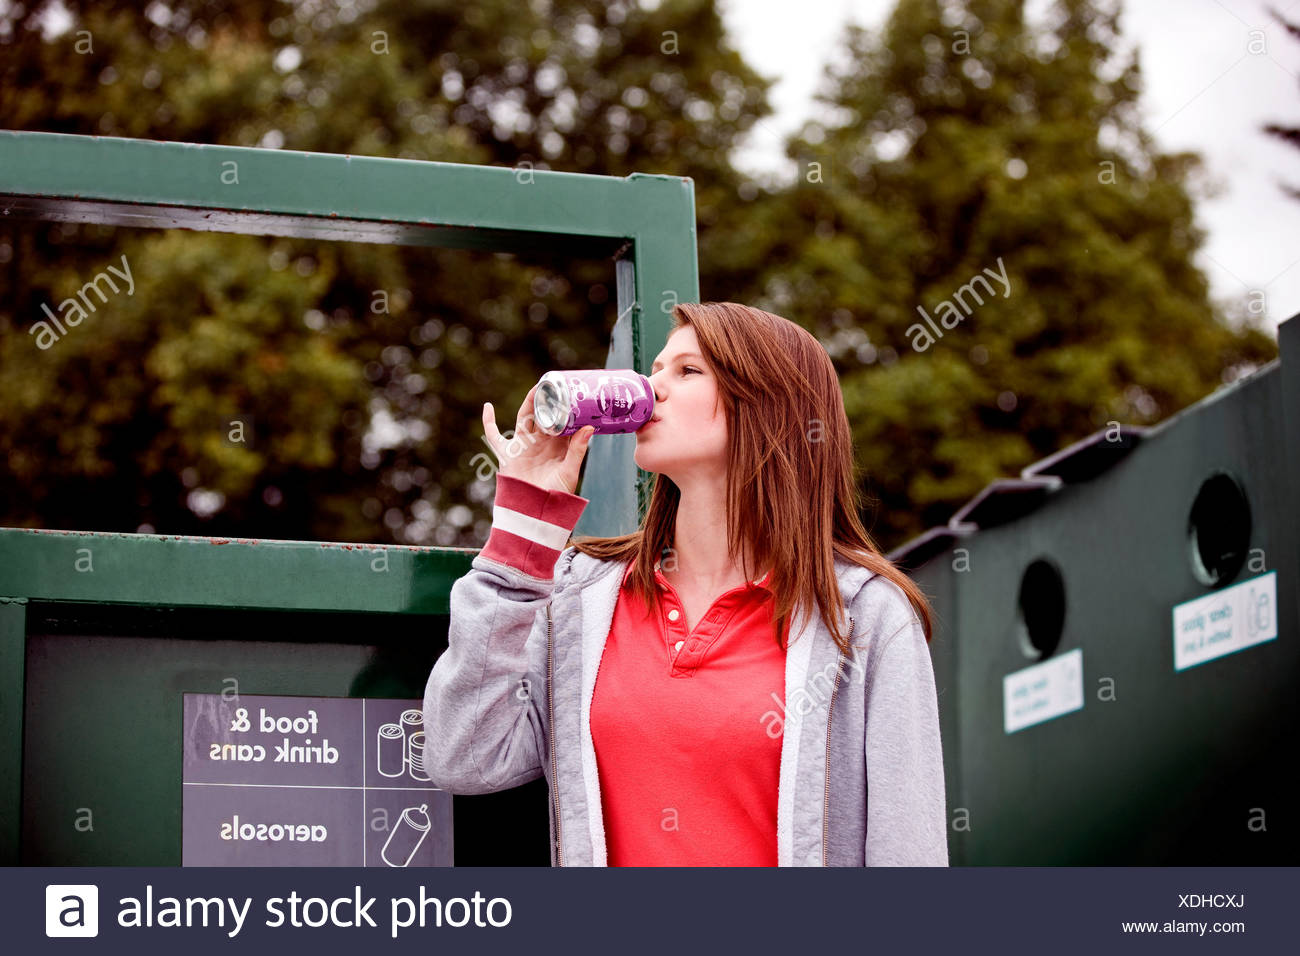 A teenage girl drinking a soft drink in a recycling center - Stock Image